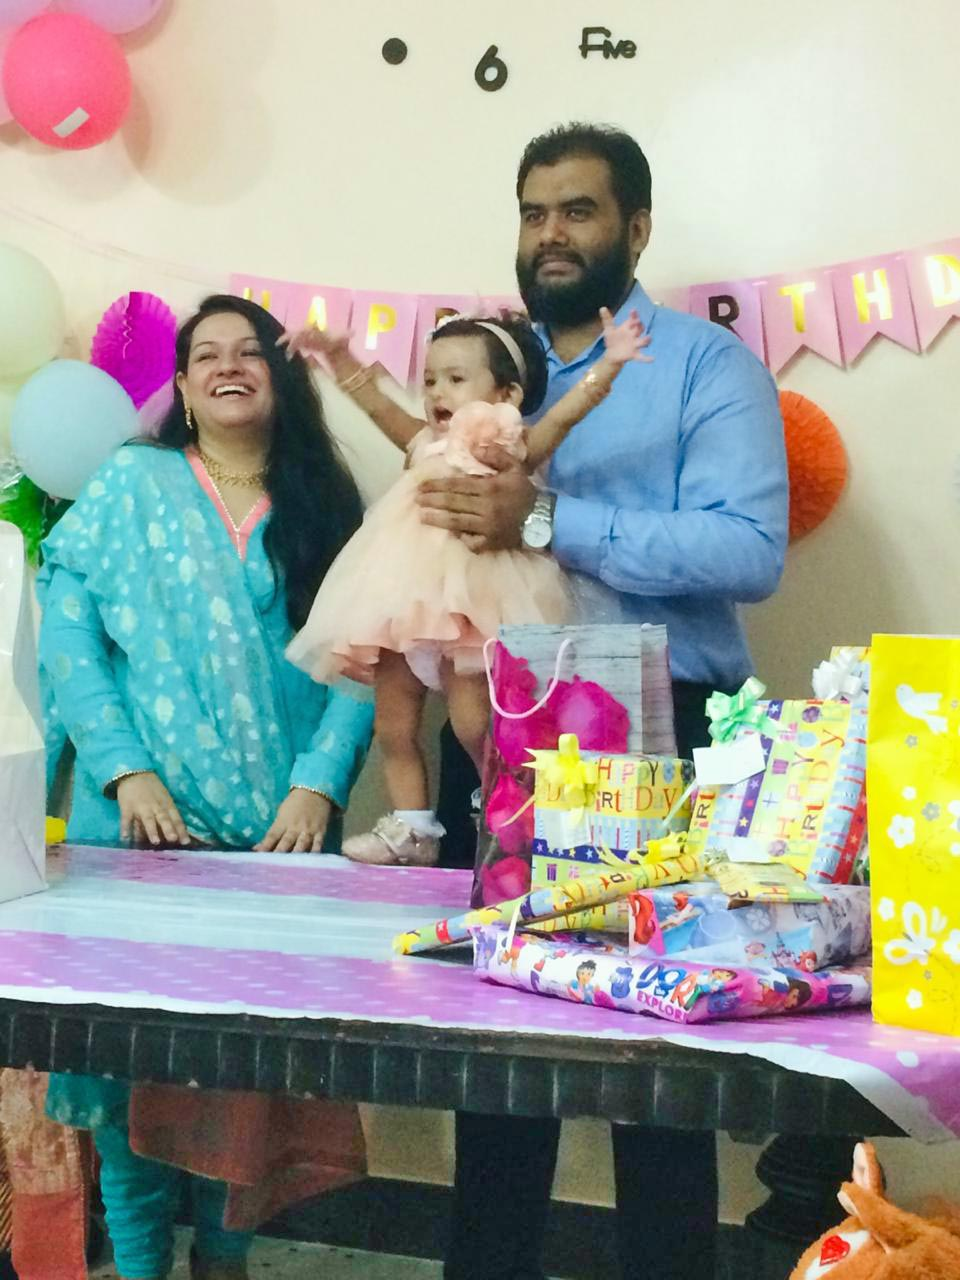 Baby Ayra with her parents, Bilal Ahmed Khan and Faryal Khan